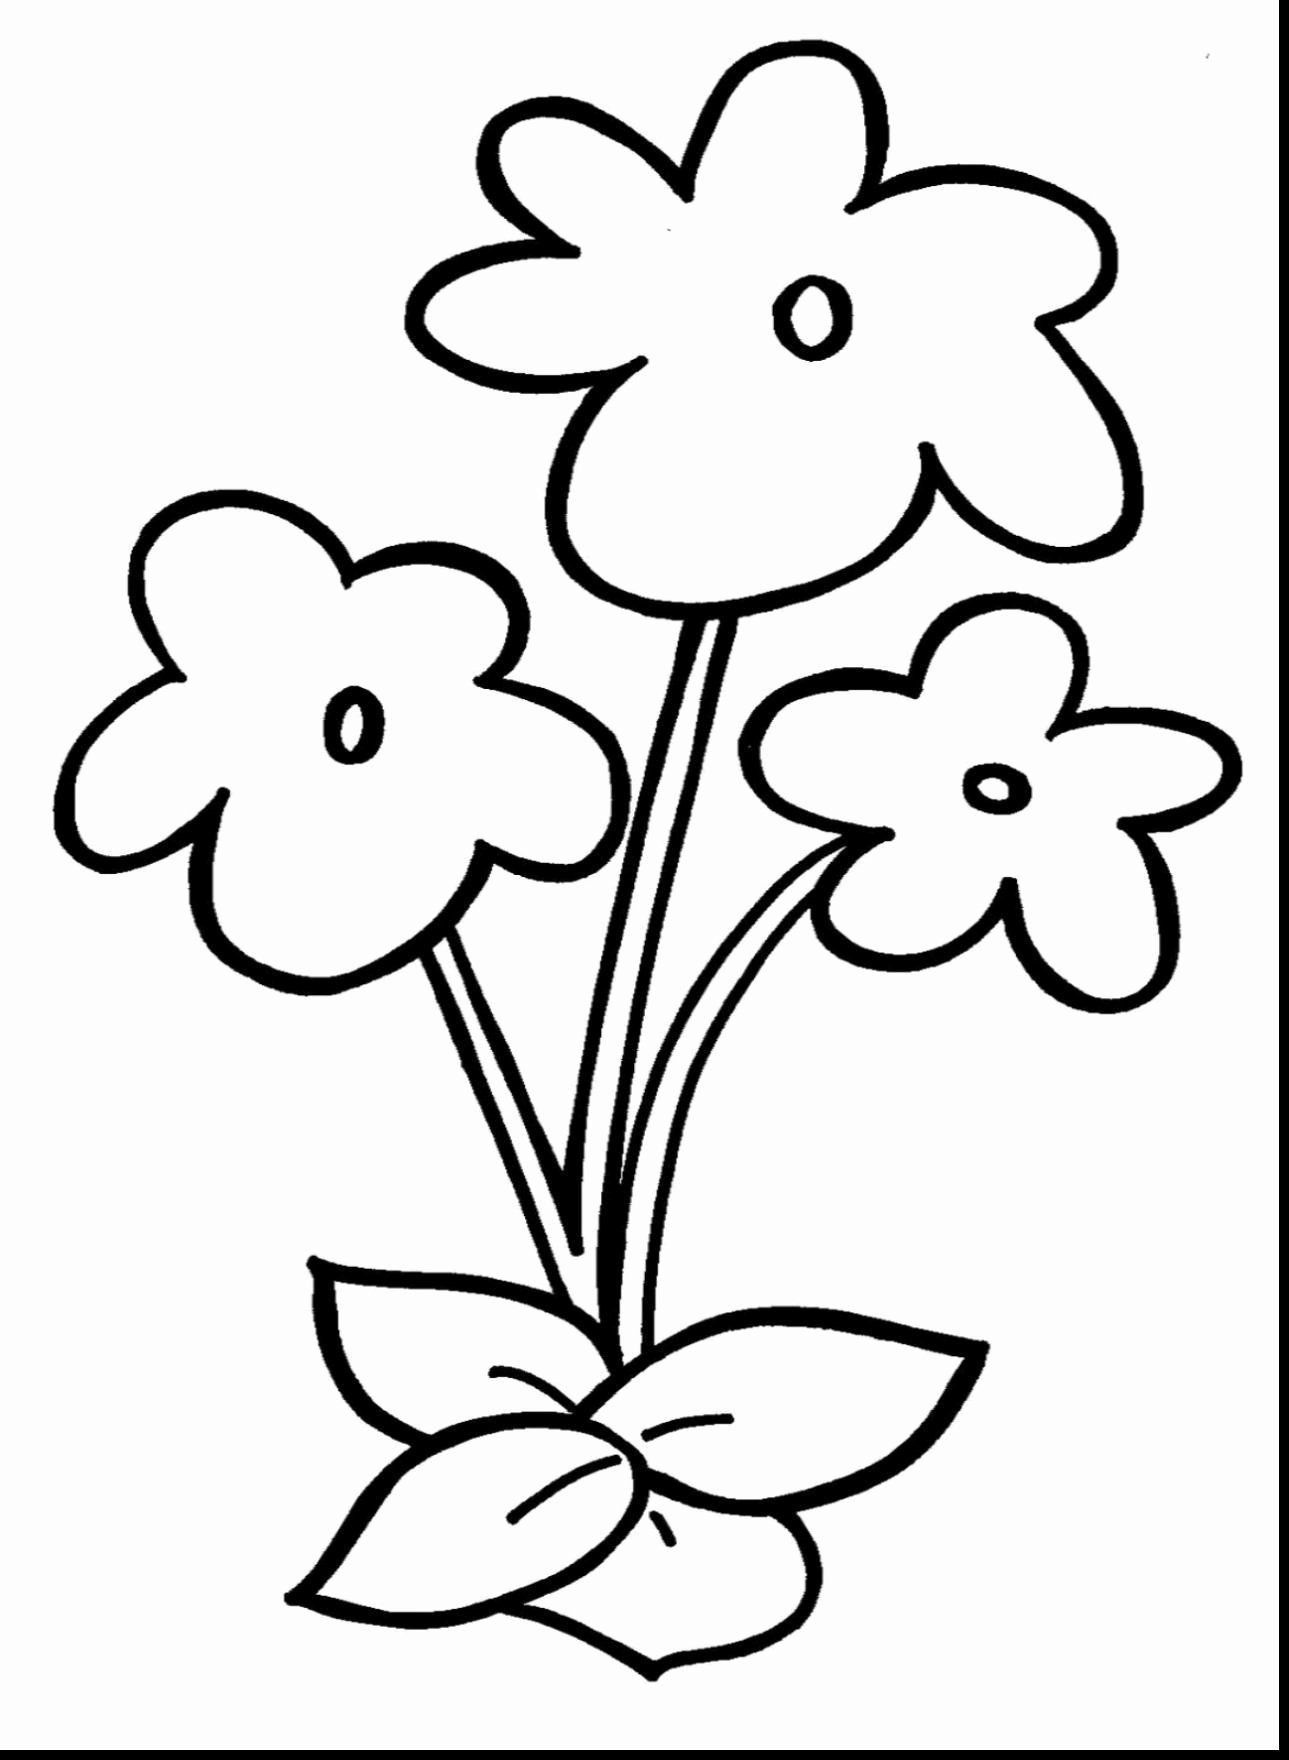 Coloring Book For Seniors Best Of Coloring Pages For Elderly At Getdrawings Flower Coloring Pages Printable Flower Coloring Pages Flower Printable